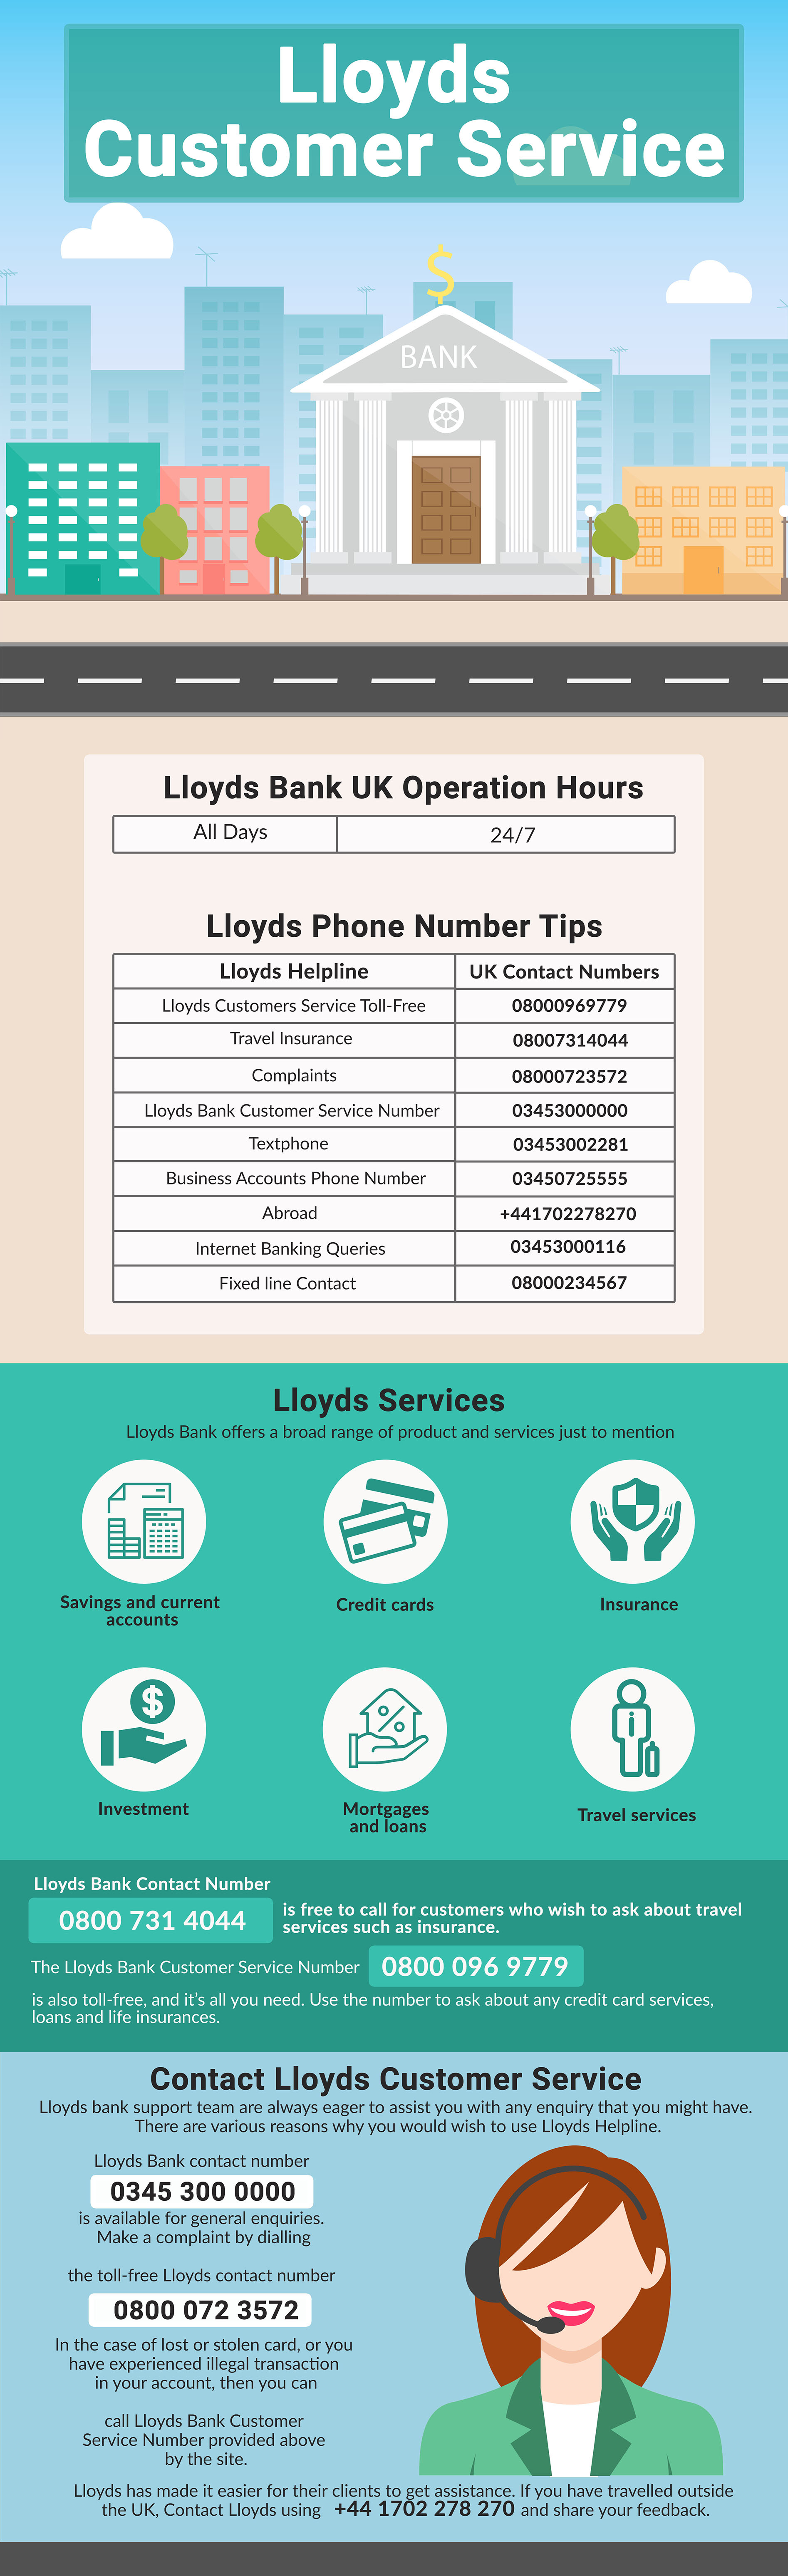 Lloyds Customer Service Contact Phone Number